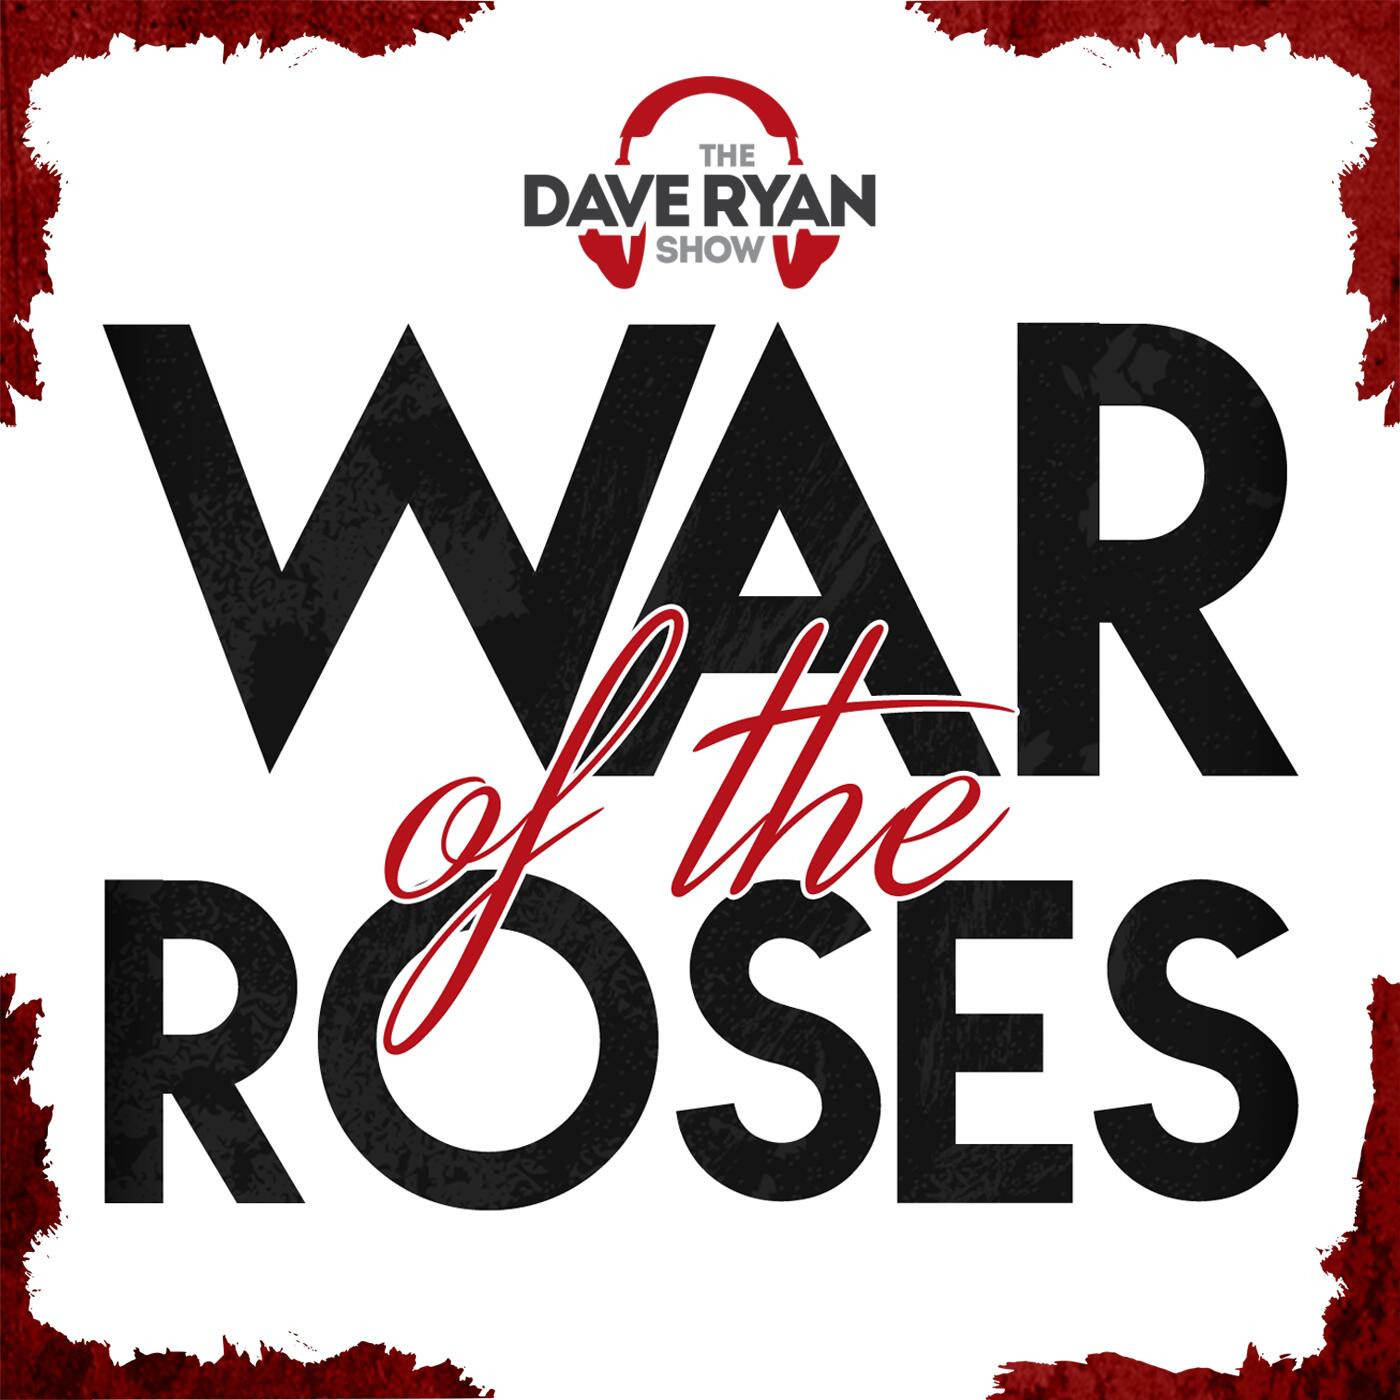 Dave Ryan's War of the Roses